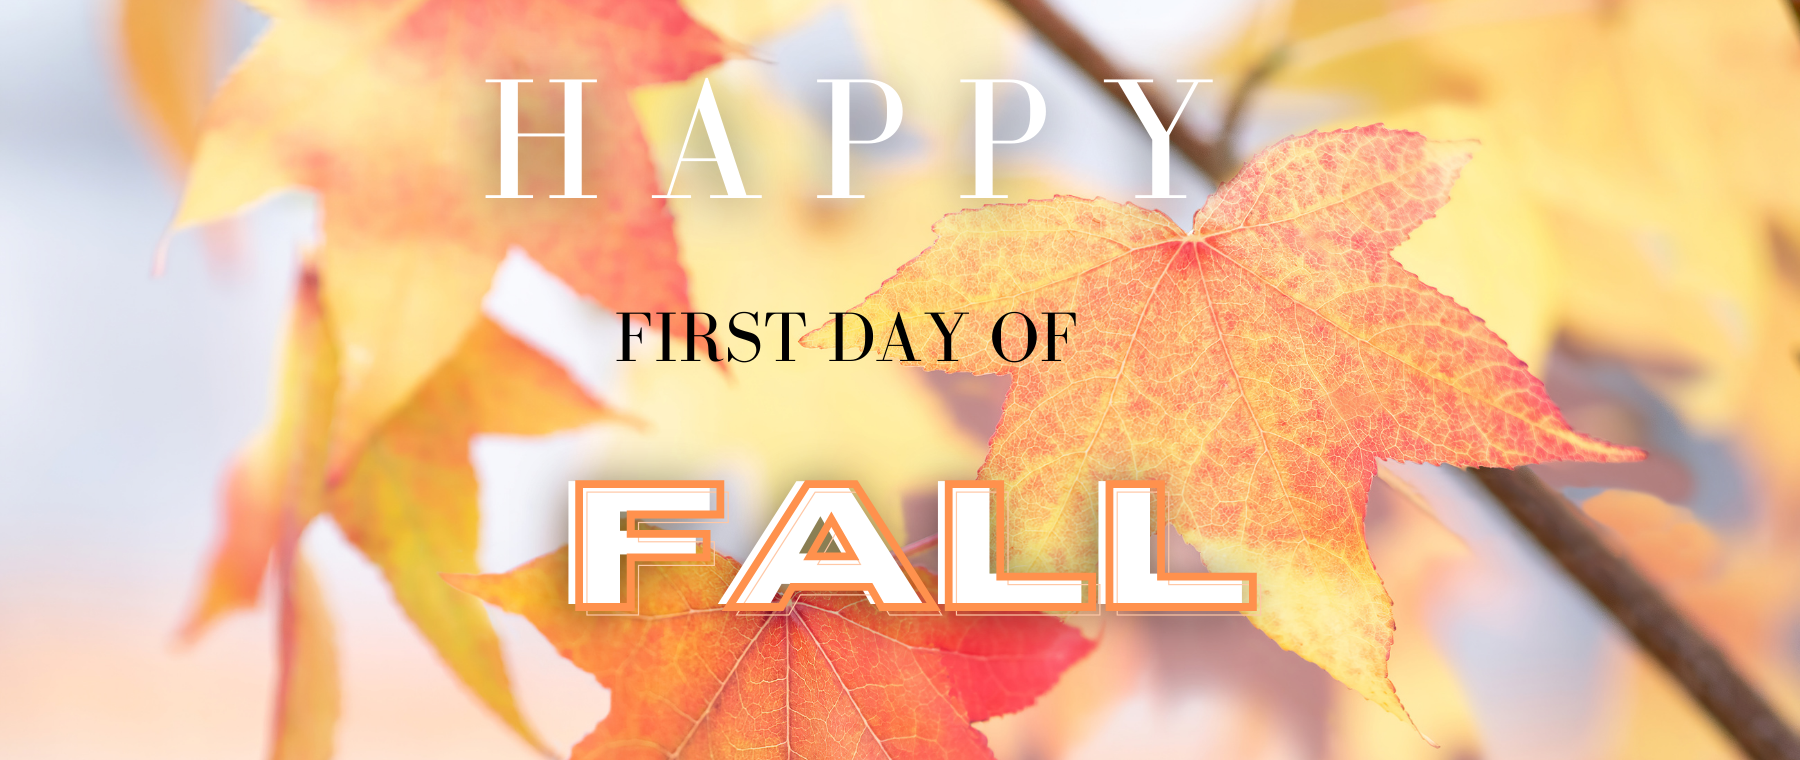 first day of fall web